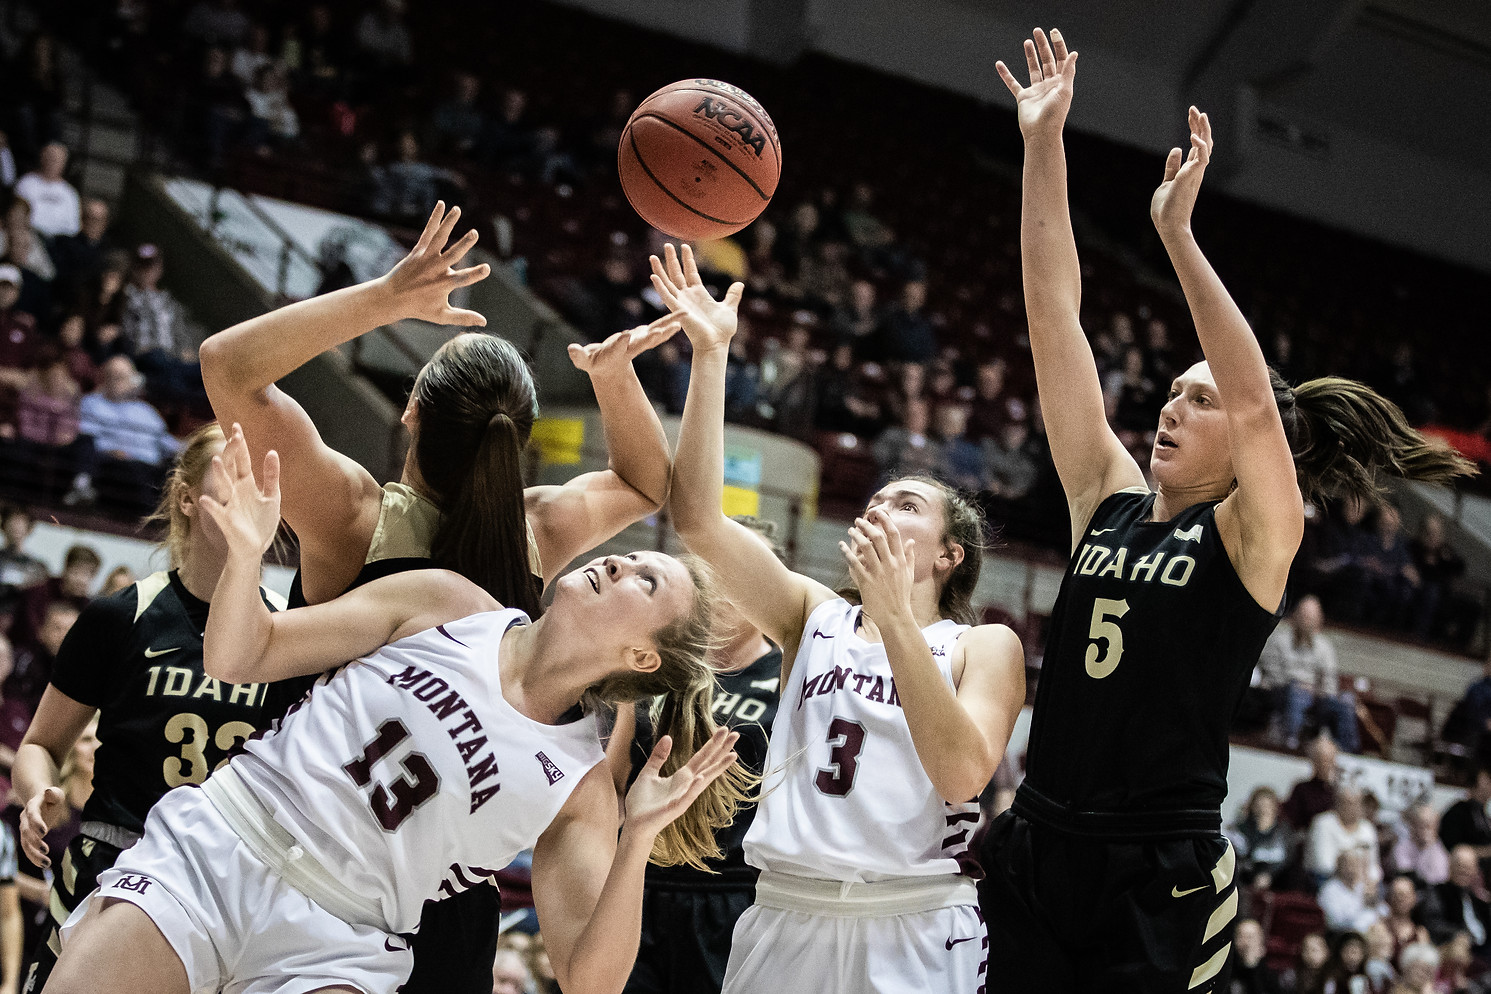 Montana sophomore forward Kylie Frohlich (13) and guard Gabi Harrington (3) battle Idaho defense for a rebound in the third period of the Lady Griz 69-60 victory over the Vandals Feb. 8, 2020 in Dahlberg Arena.